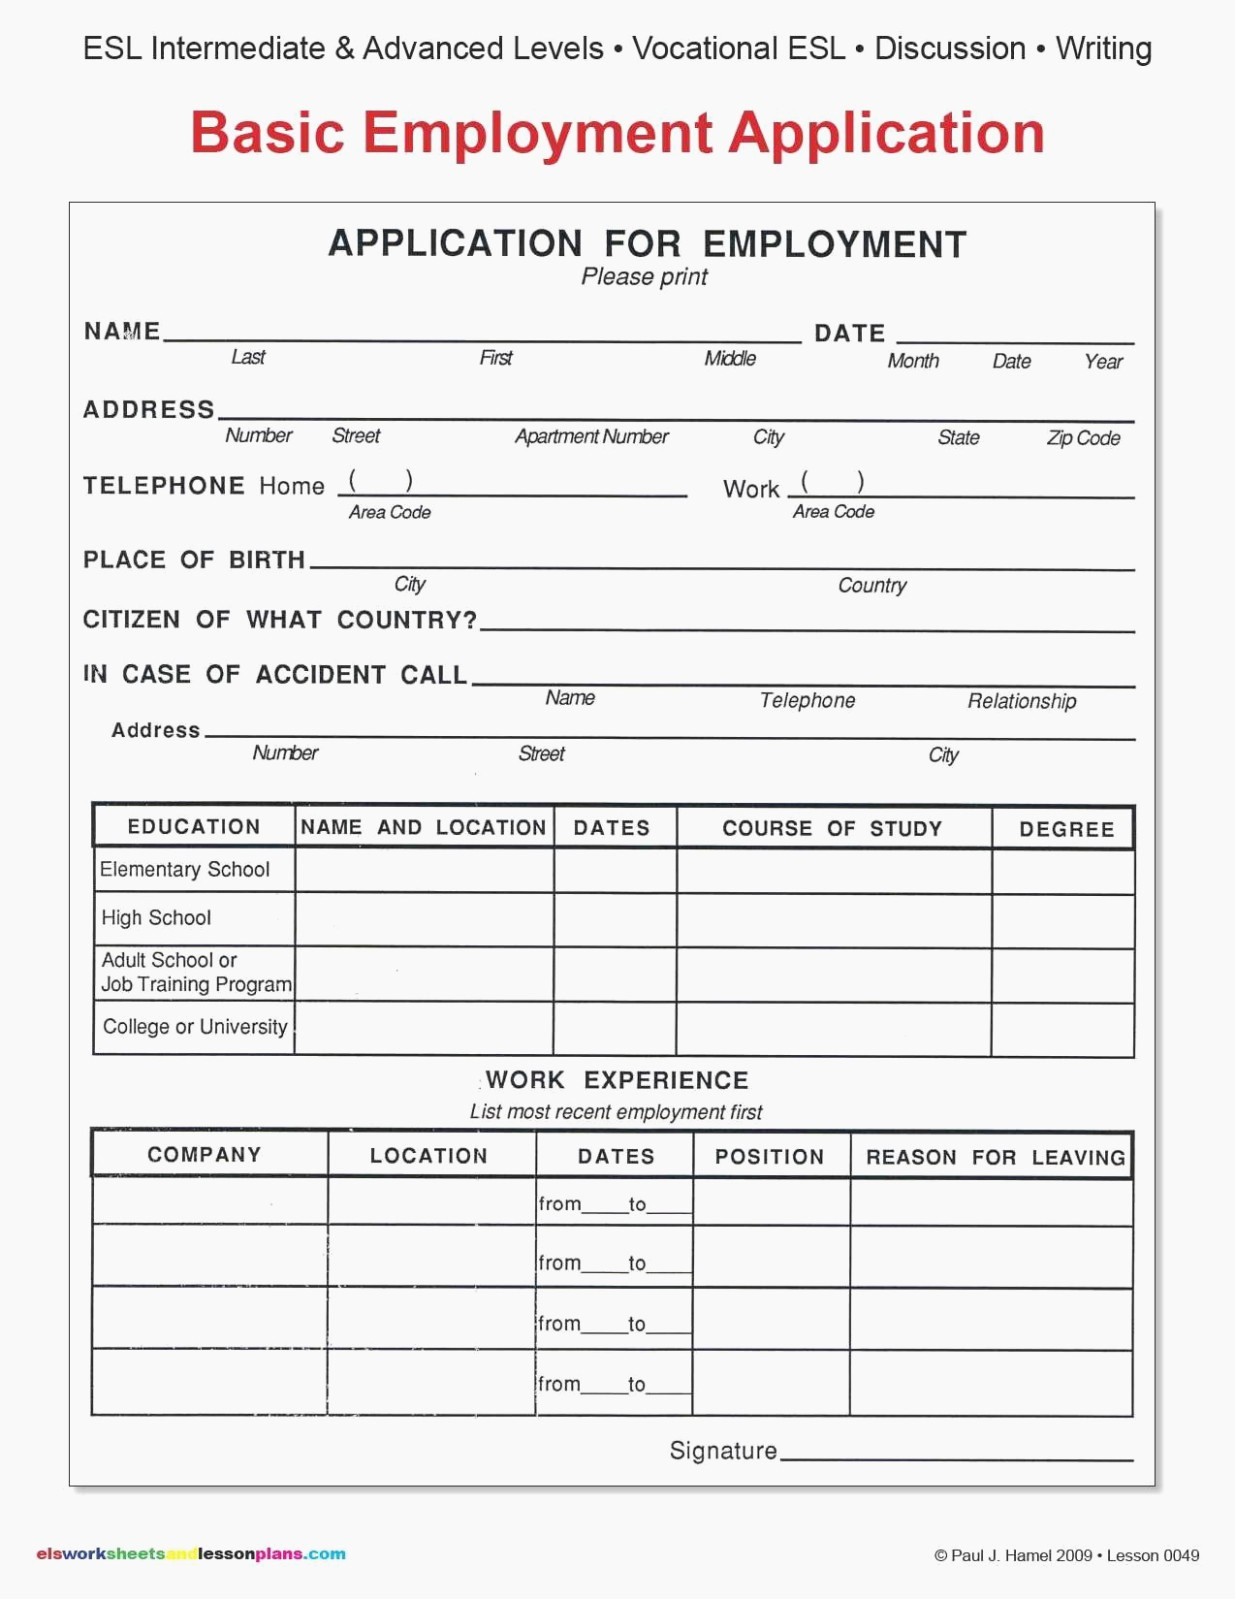 Free Bilingual Employment Application form Inspirational 100 Employment Application oregon State Legislature Free